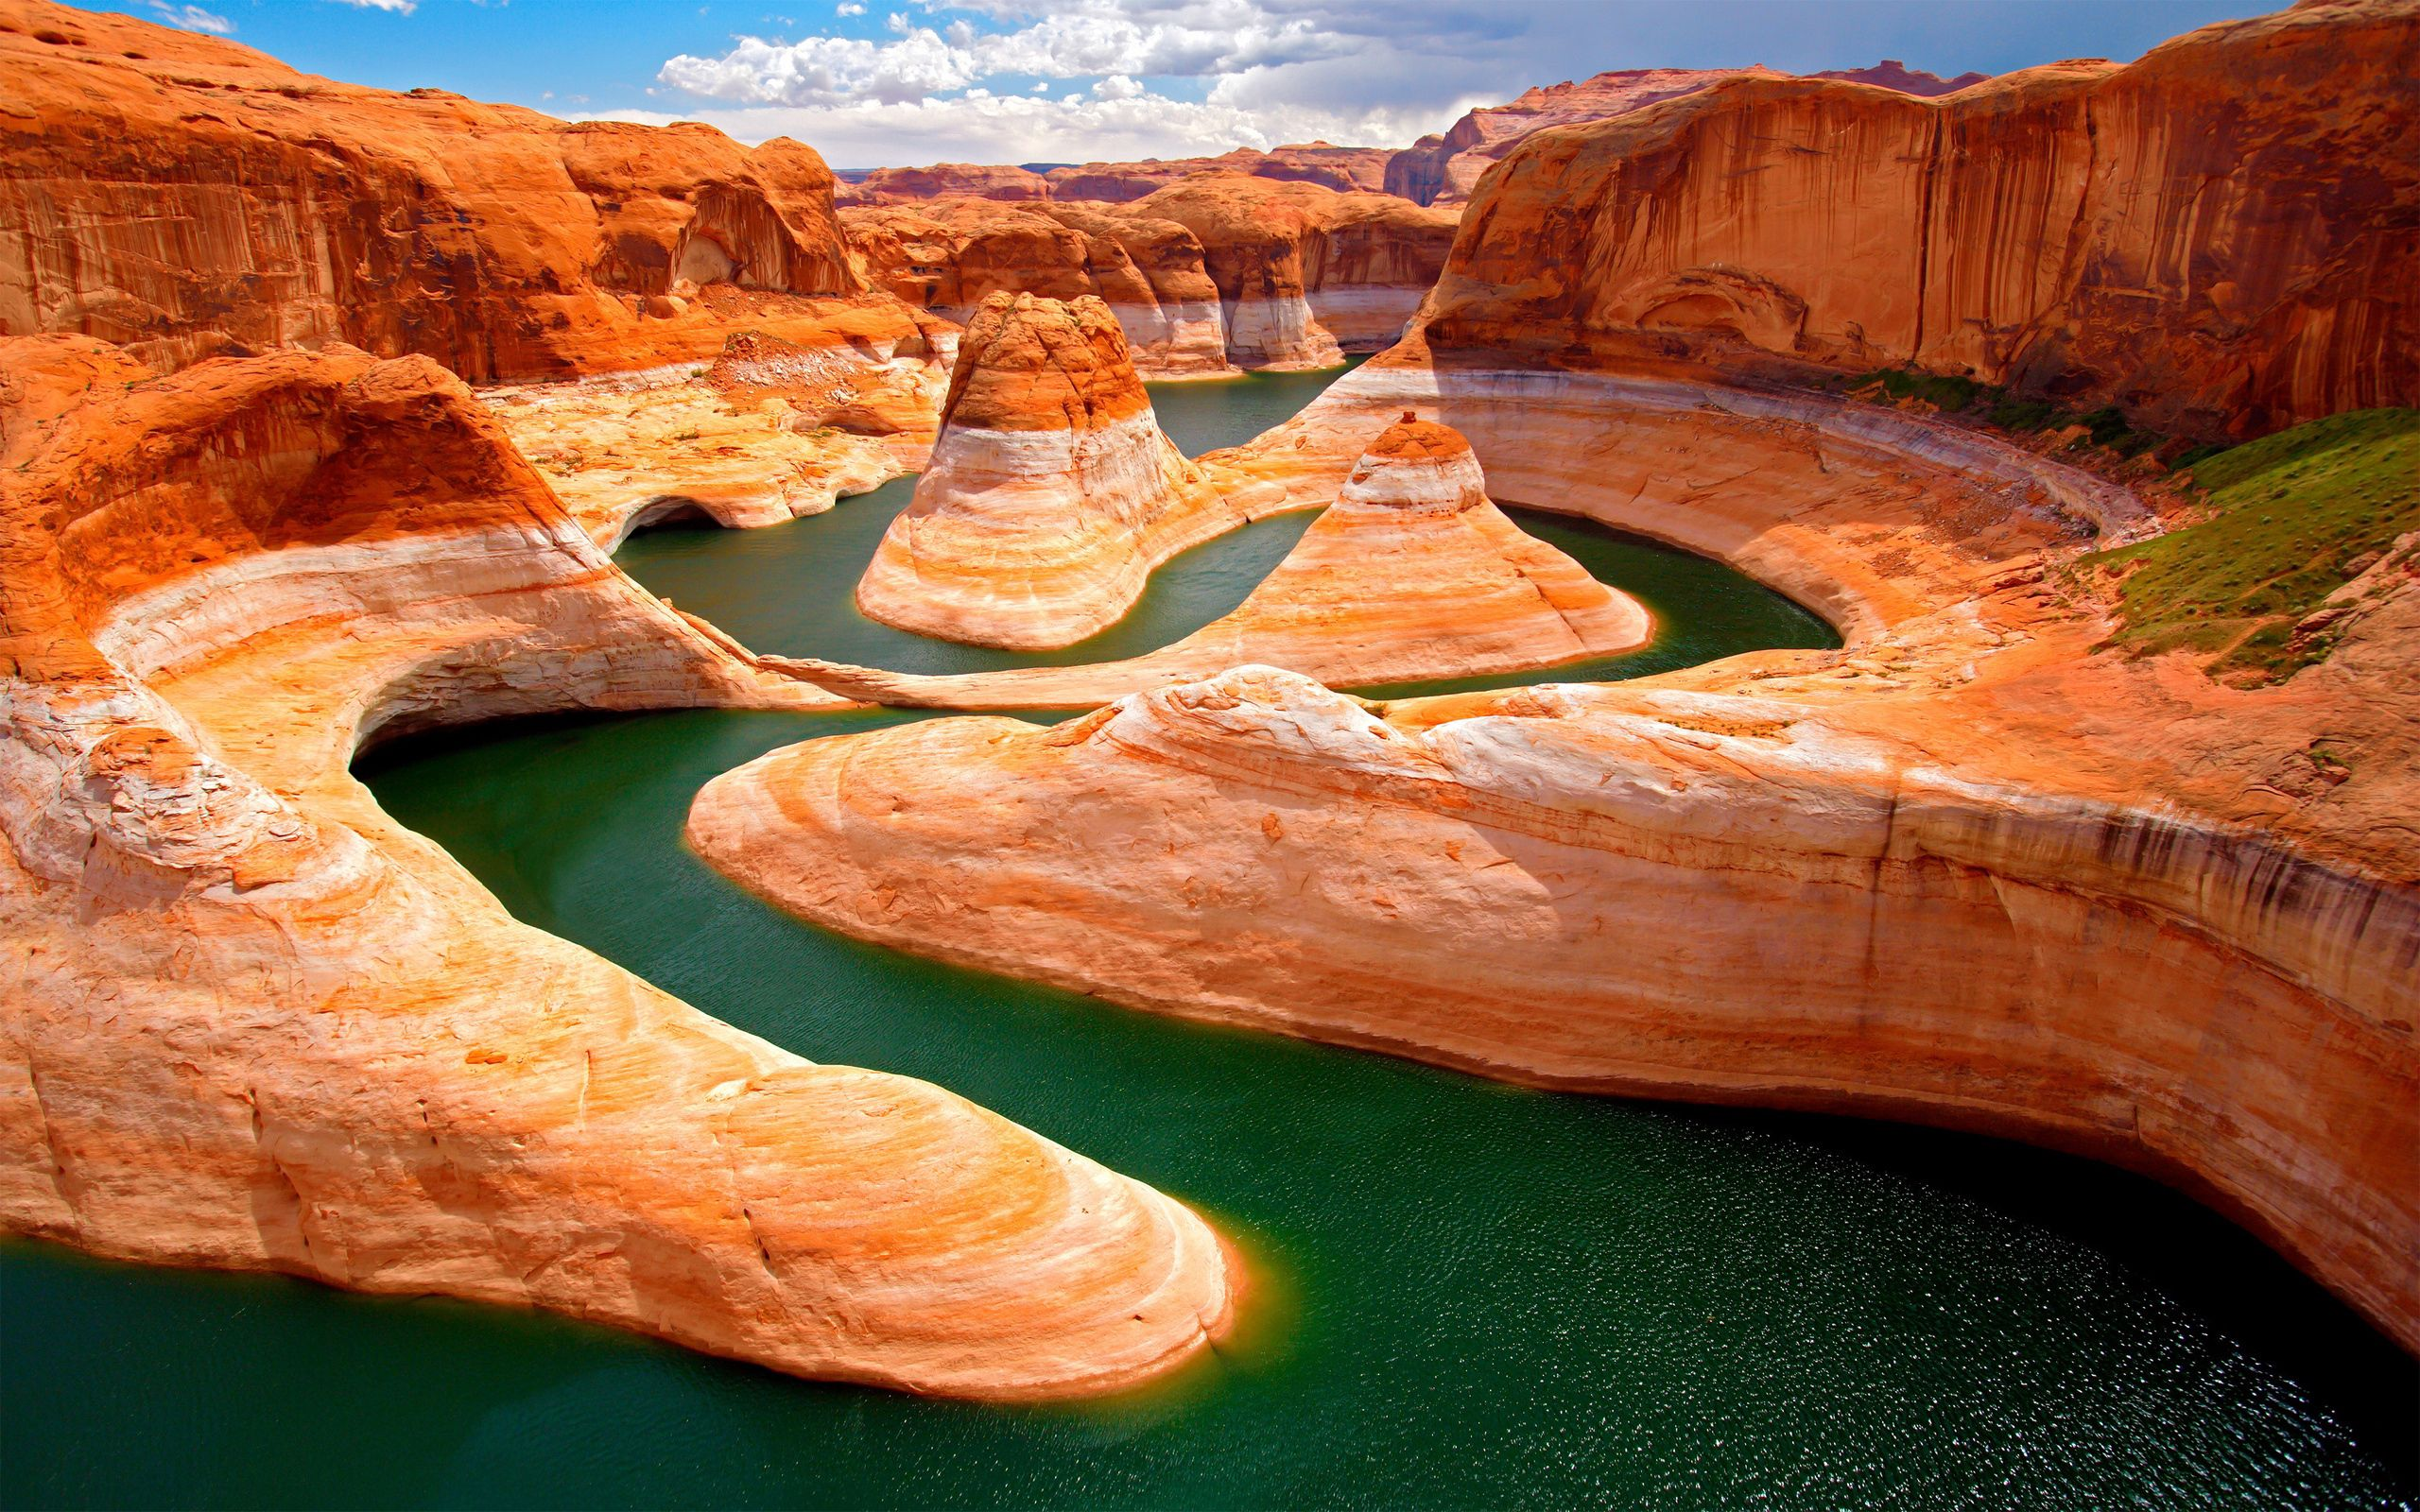 127338 download wallpaper Nature, Canyon, Rivers, Moss, Bends, Turns, Heat, Mountains screensavers and pictures for free